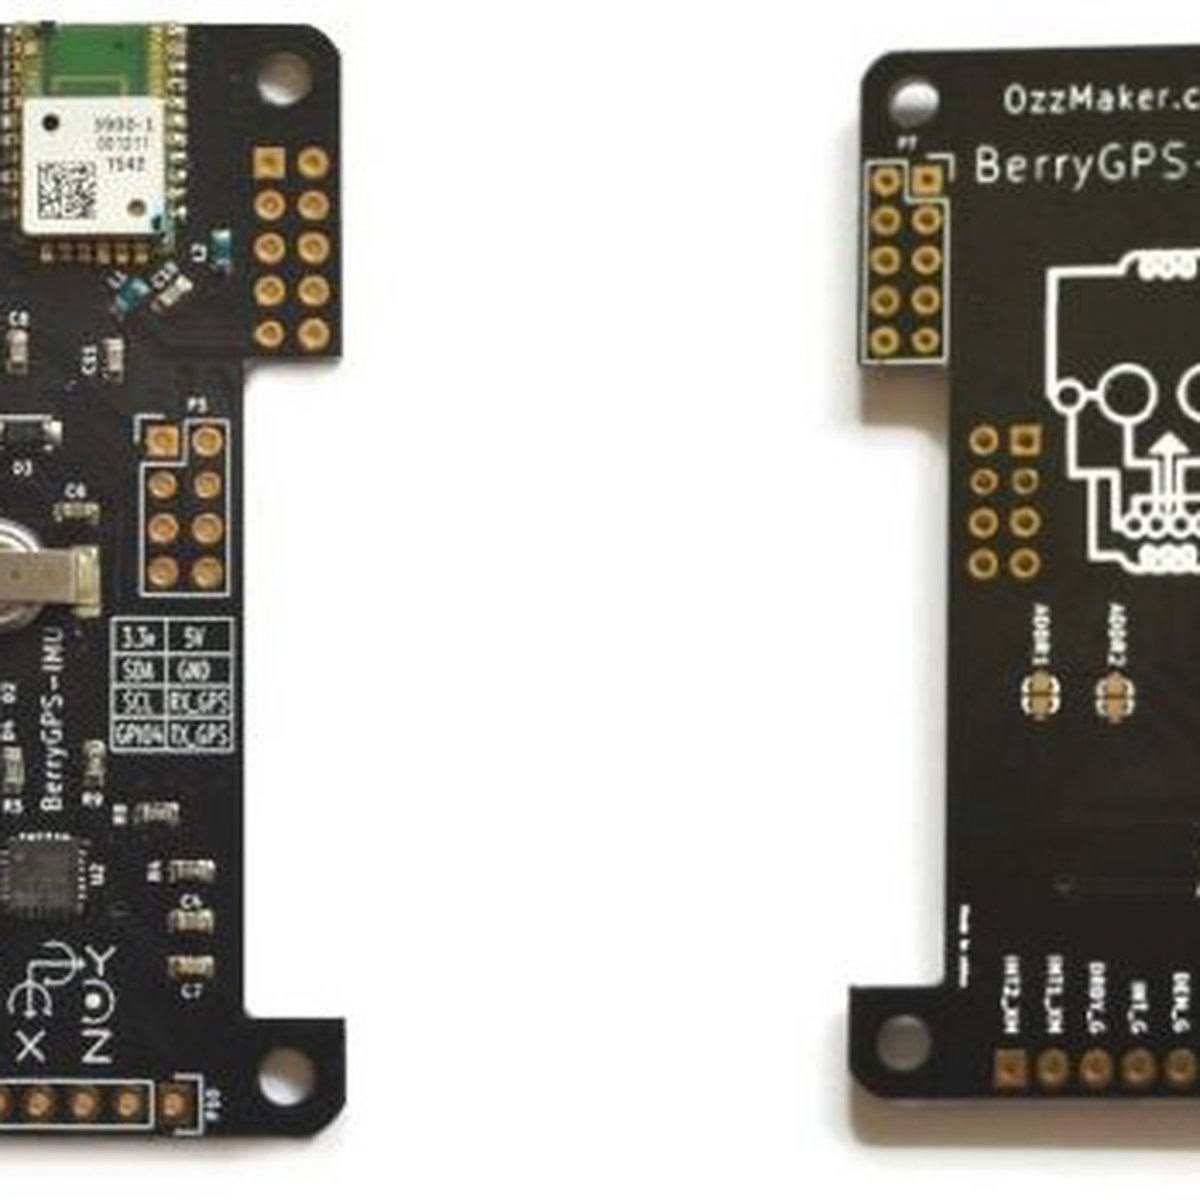 BerryGPS-IMUv3 from OzzMaker on Tindie